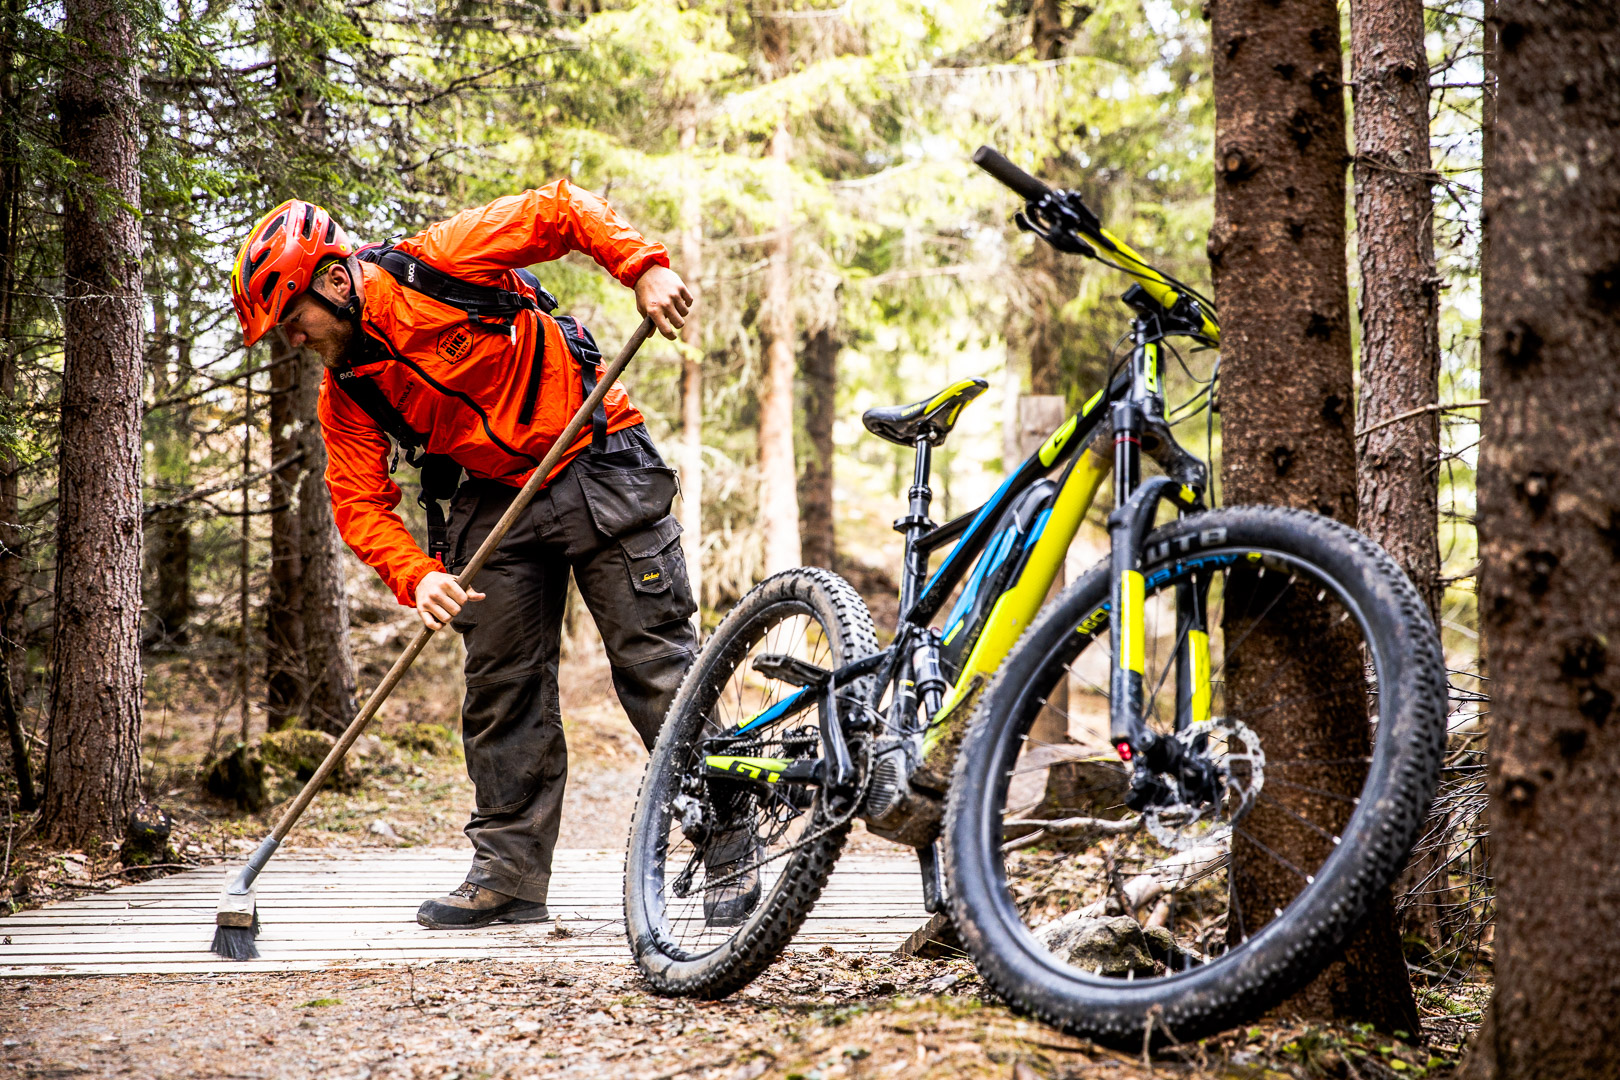 Norway's Trysil Bike Arena Employs Trail Patrollers to Keep Riders Safe and Trails Maintained - Singletracks Mountain Bike News